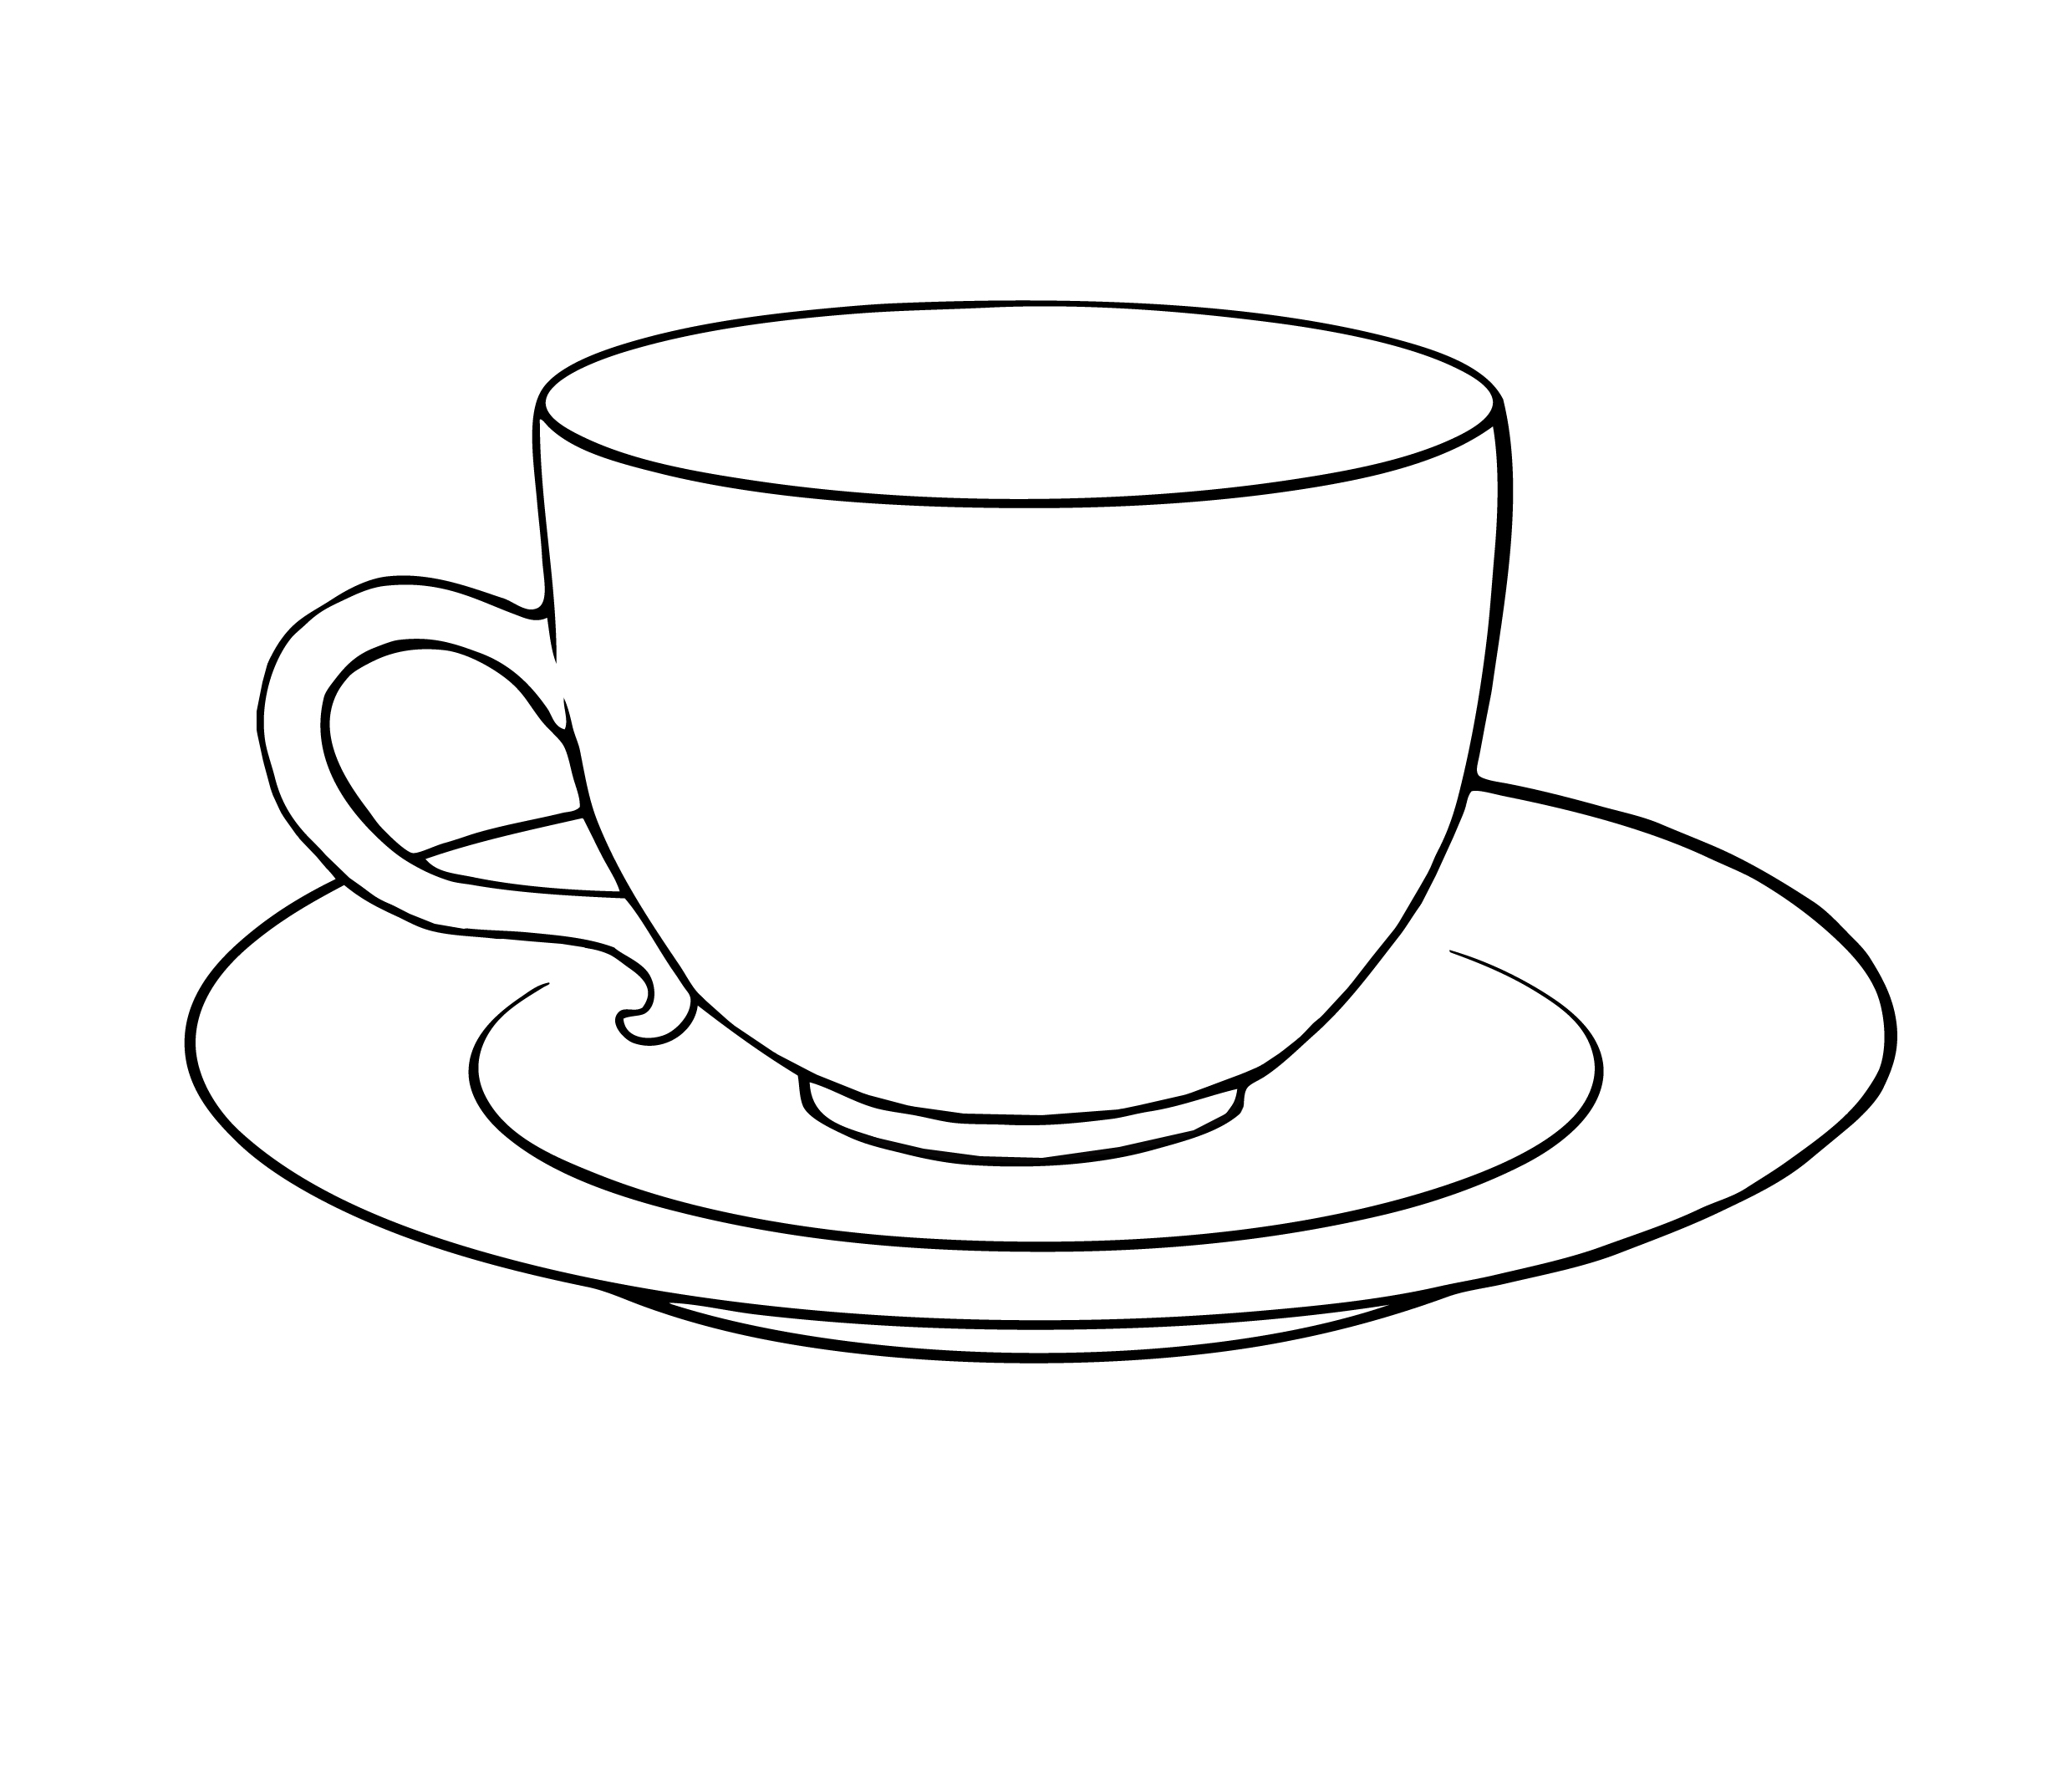 Tea cup saucer clipart free download clip art on